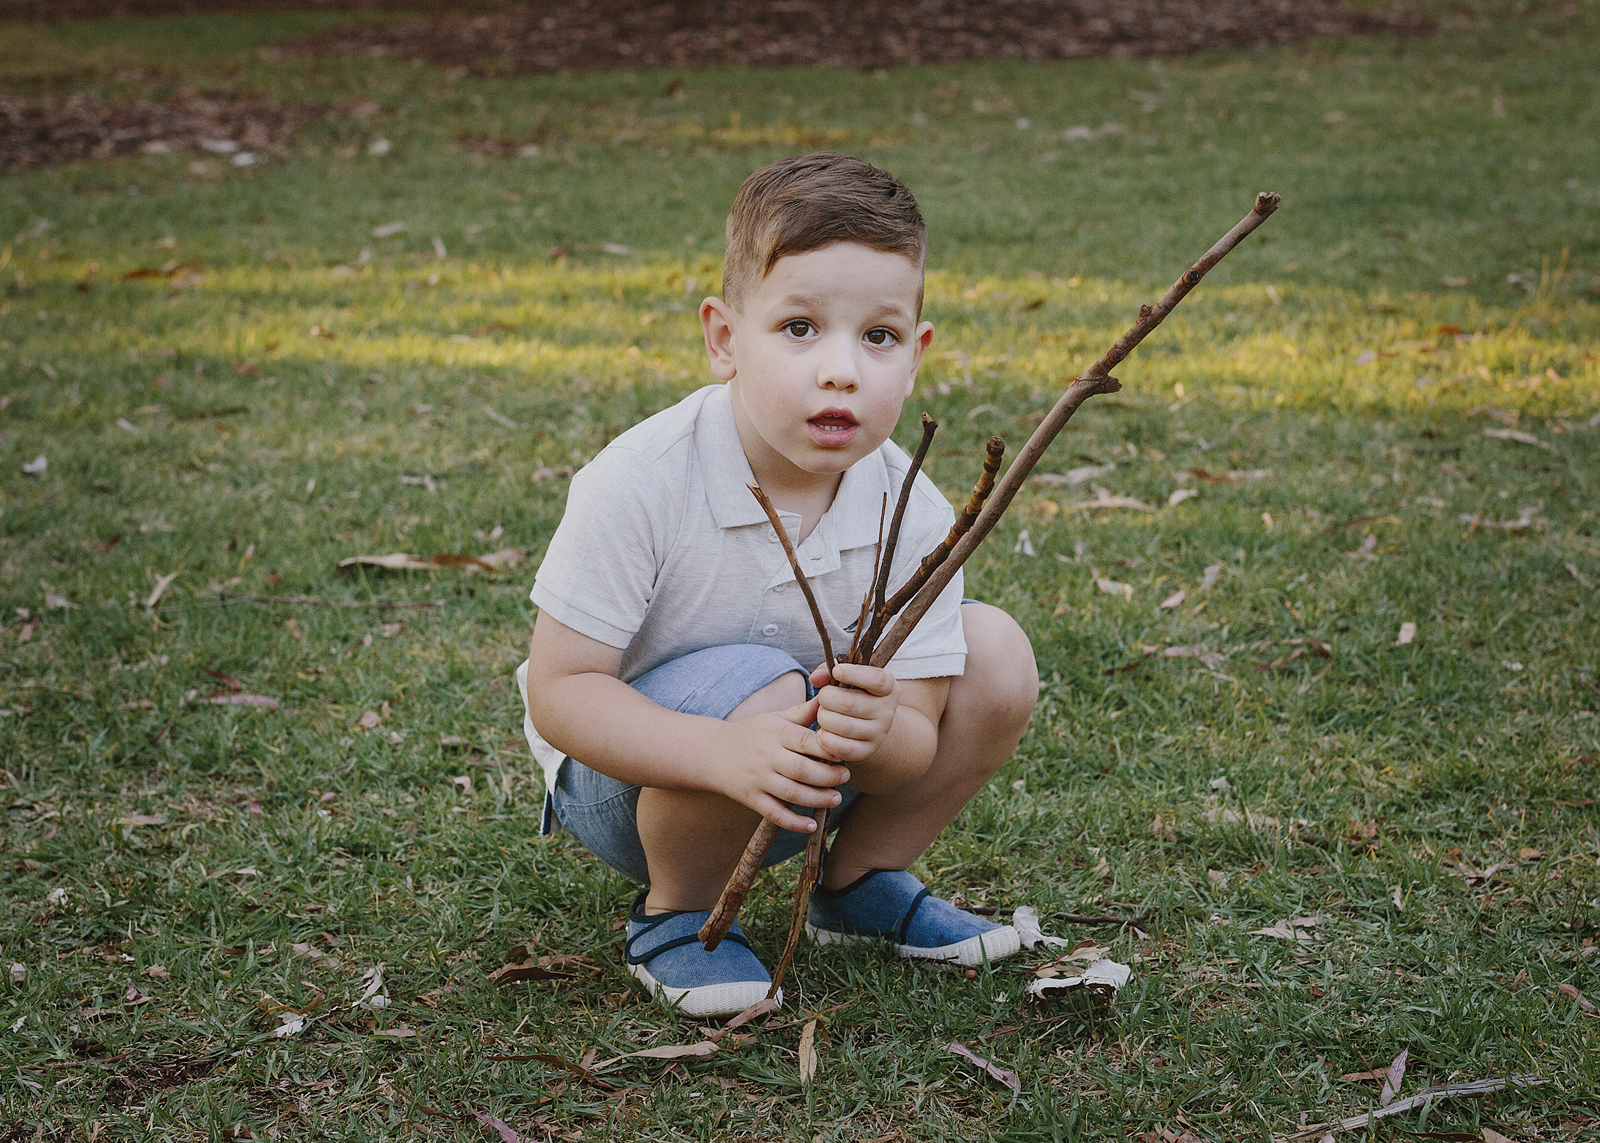 Child playing with twigs at the park